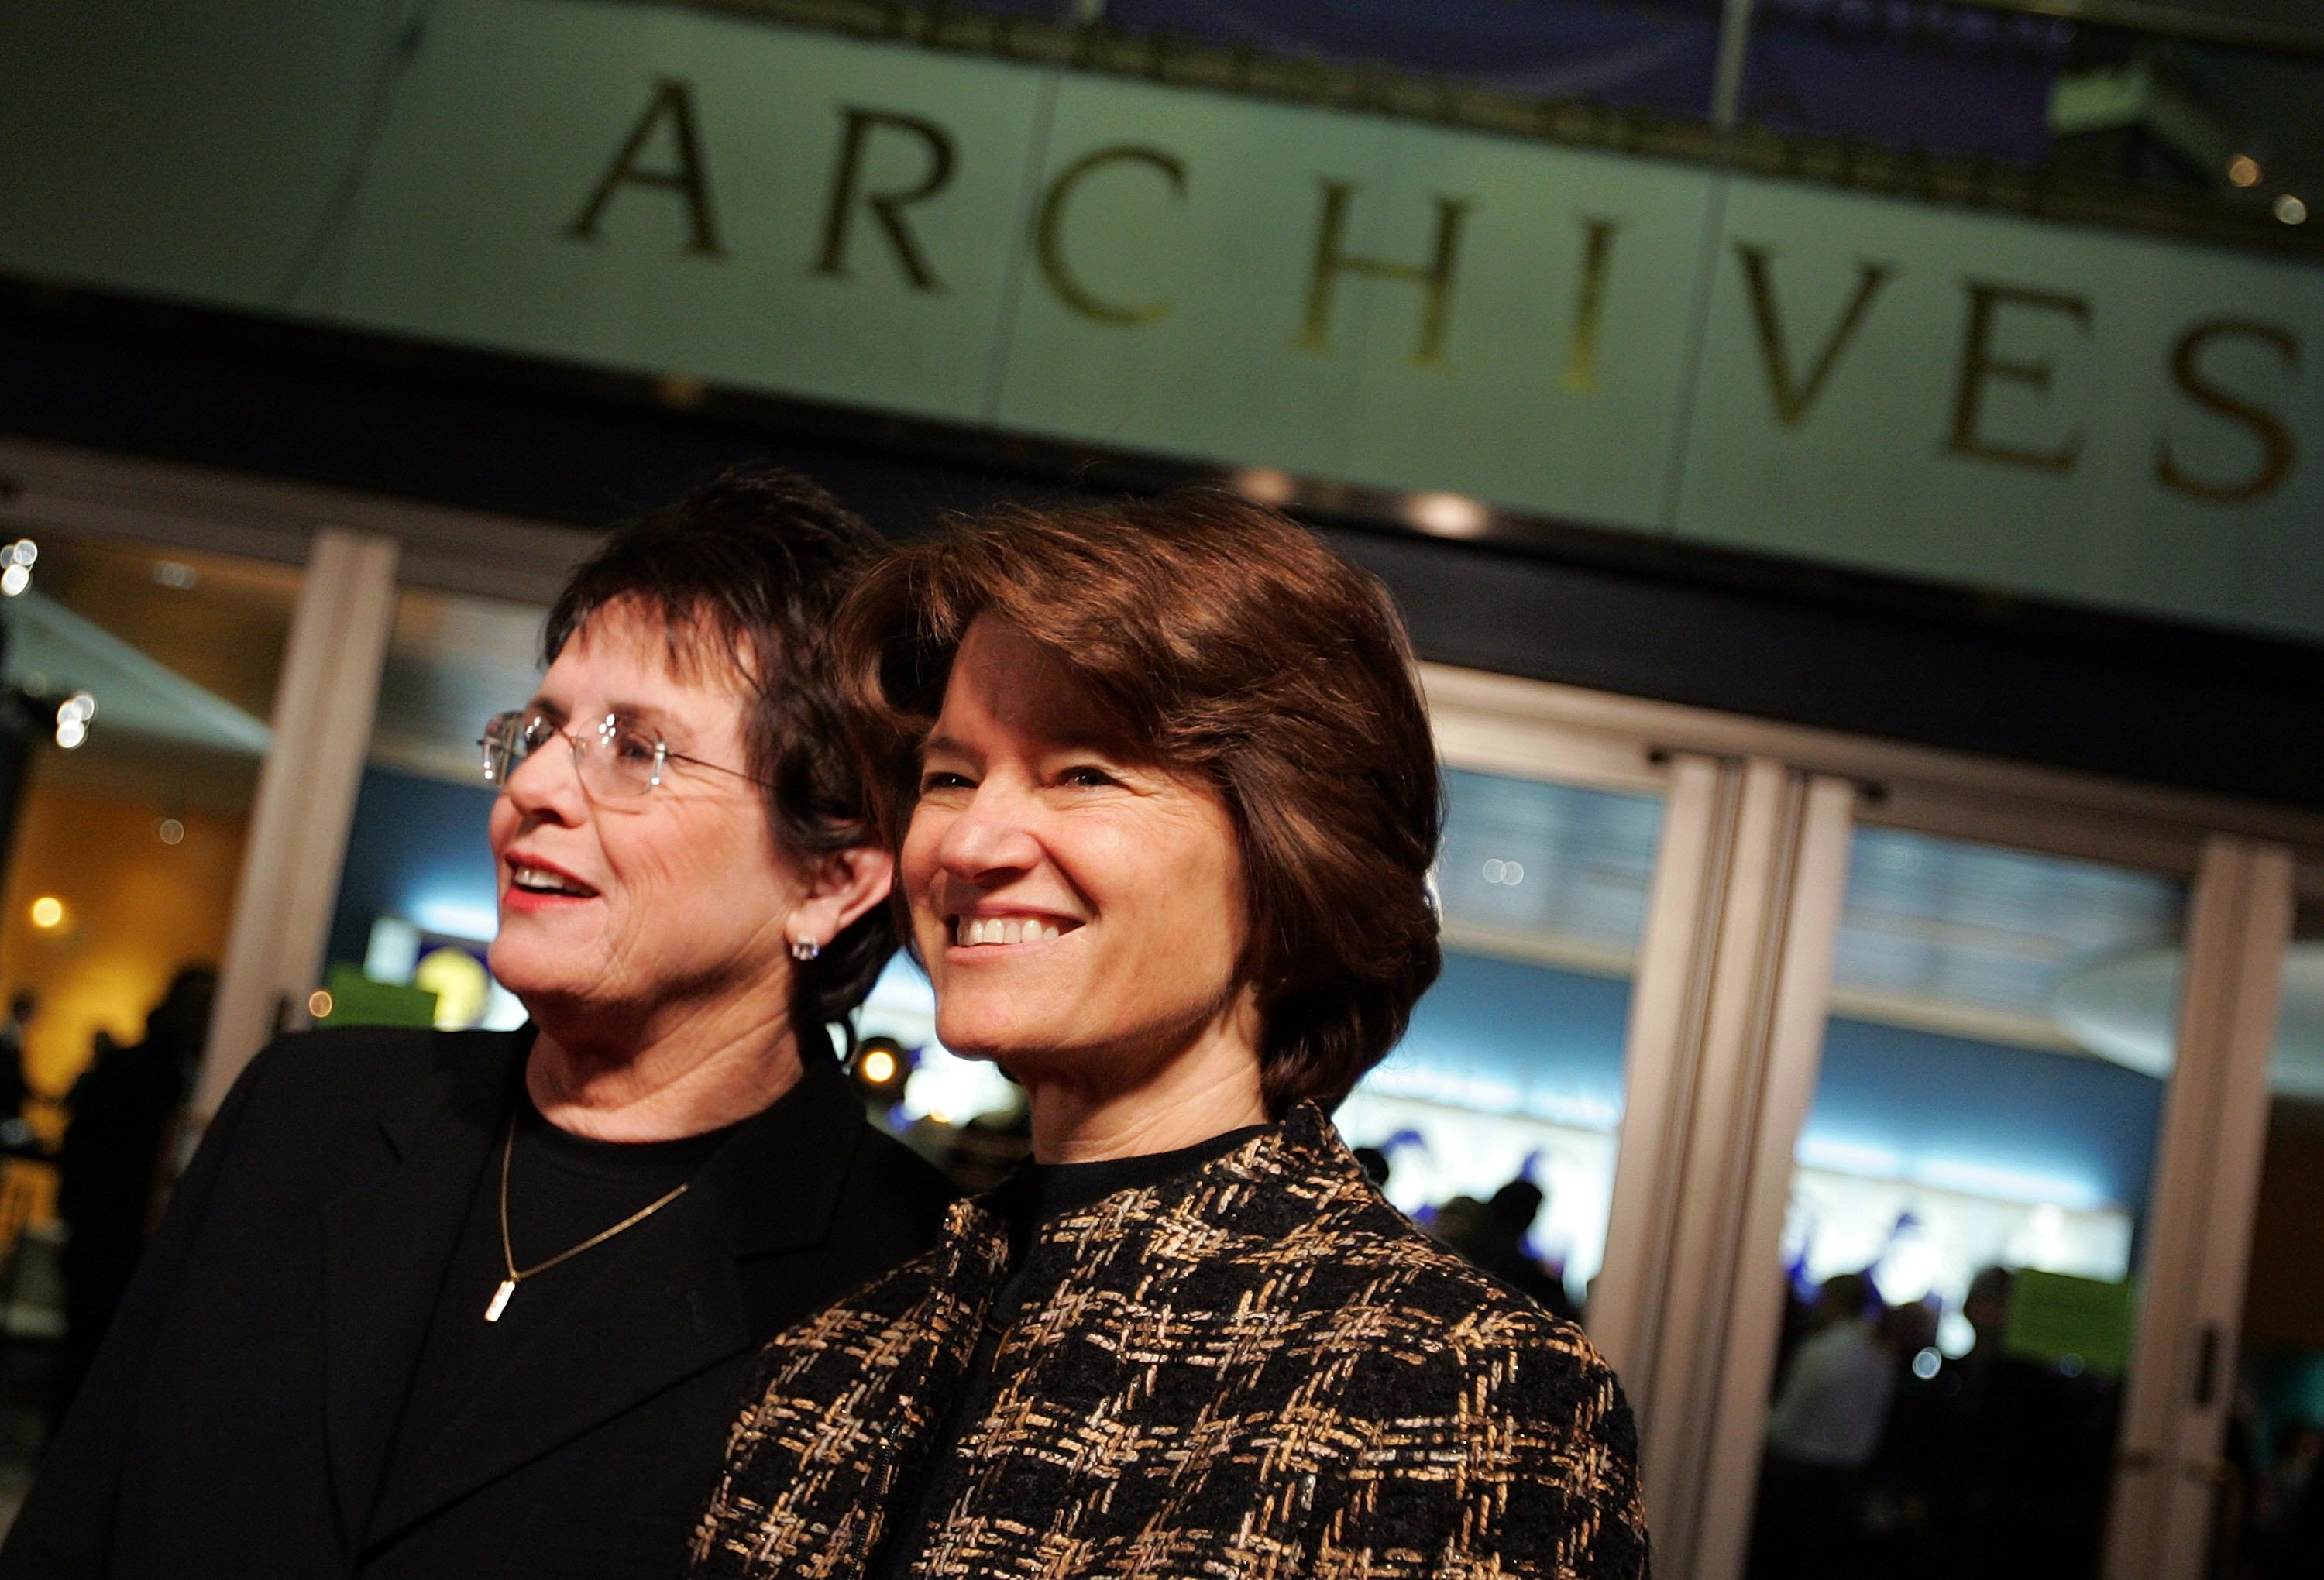 Sally Ride's Partner: I Would've Married Her In A Heartbeat'